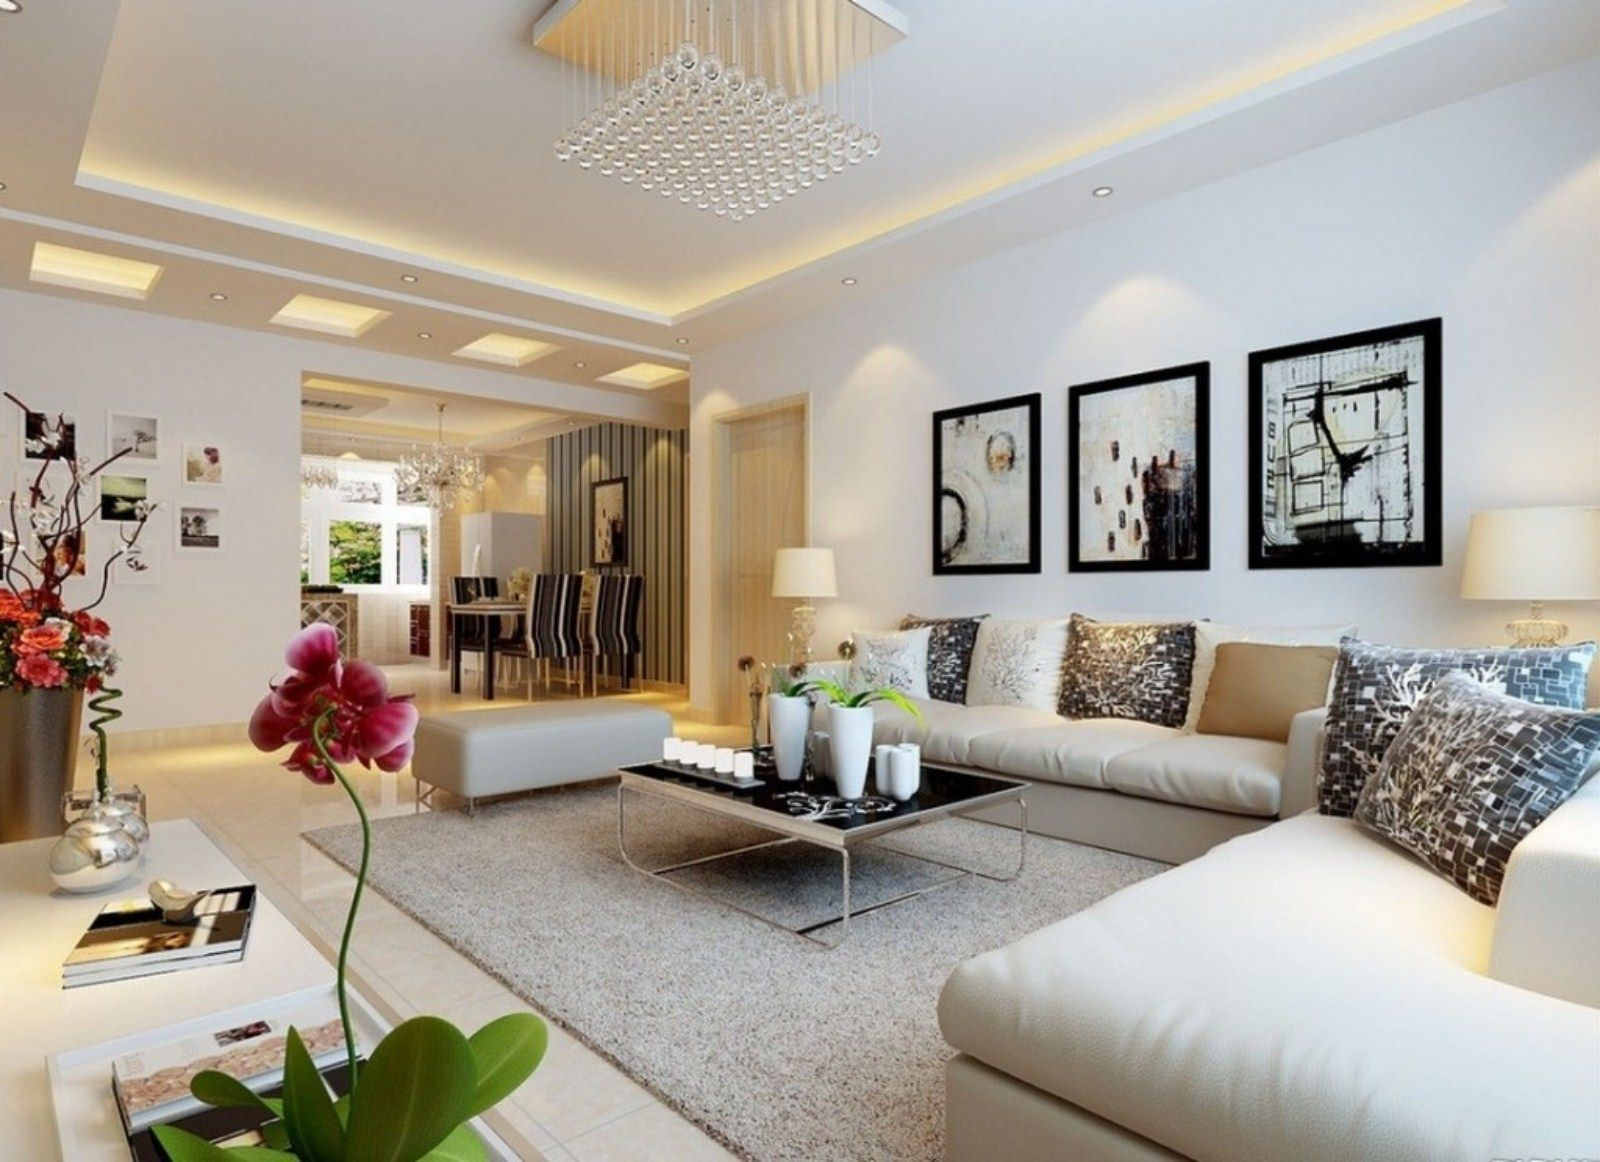 Interior design for living room in kerala cool interior design interior design for living room in kerala cool interior design pinterest kerala interiors and interior design living room amipublicfo Images